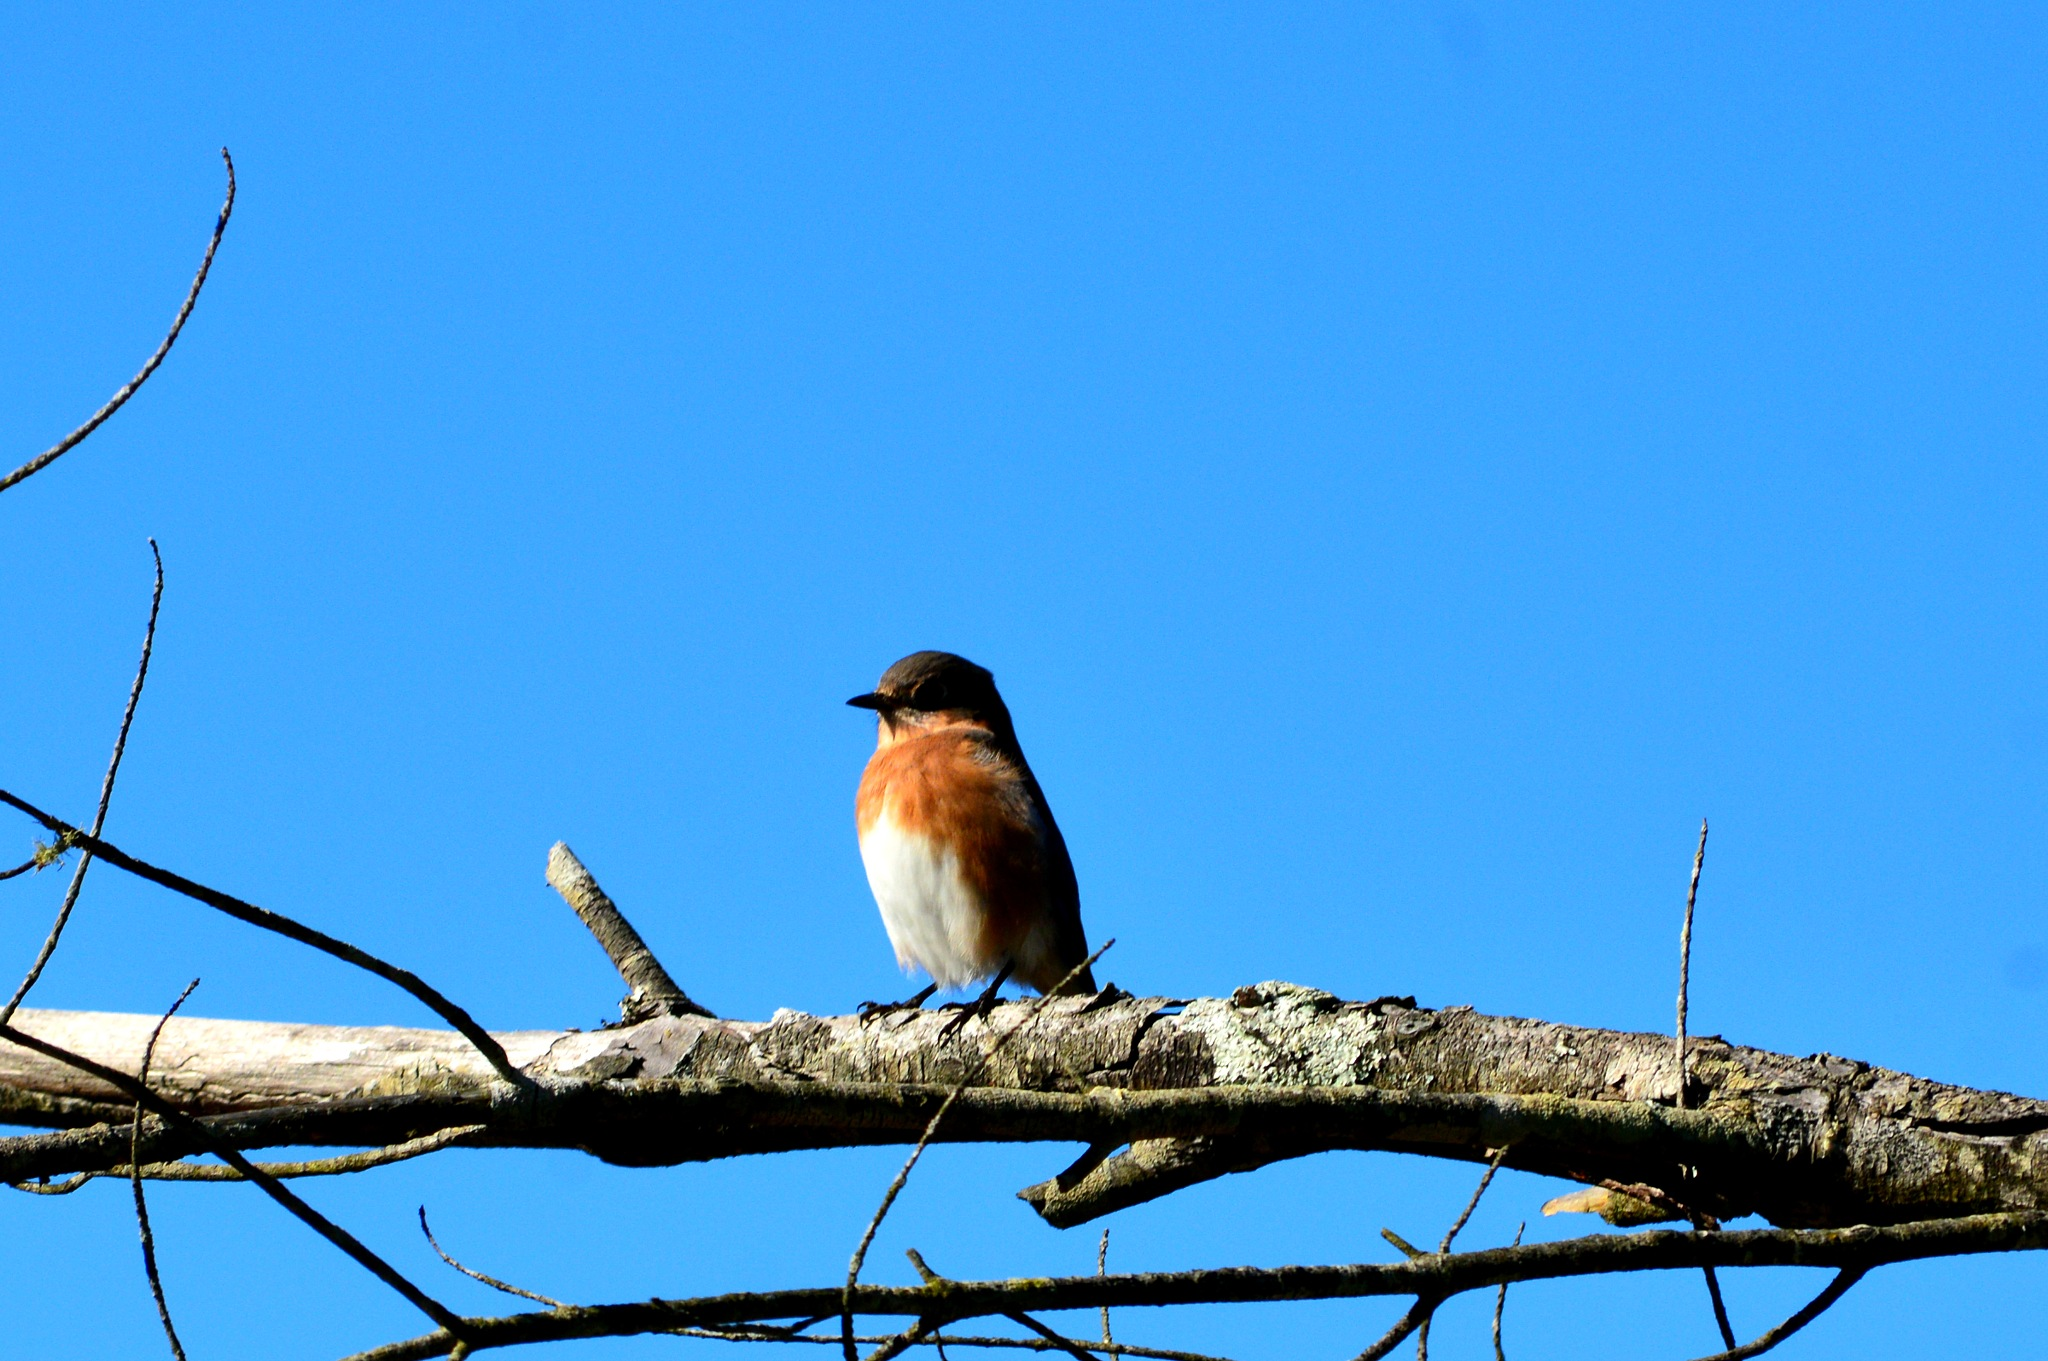 Bird on a limb by Robby